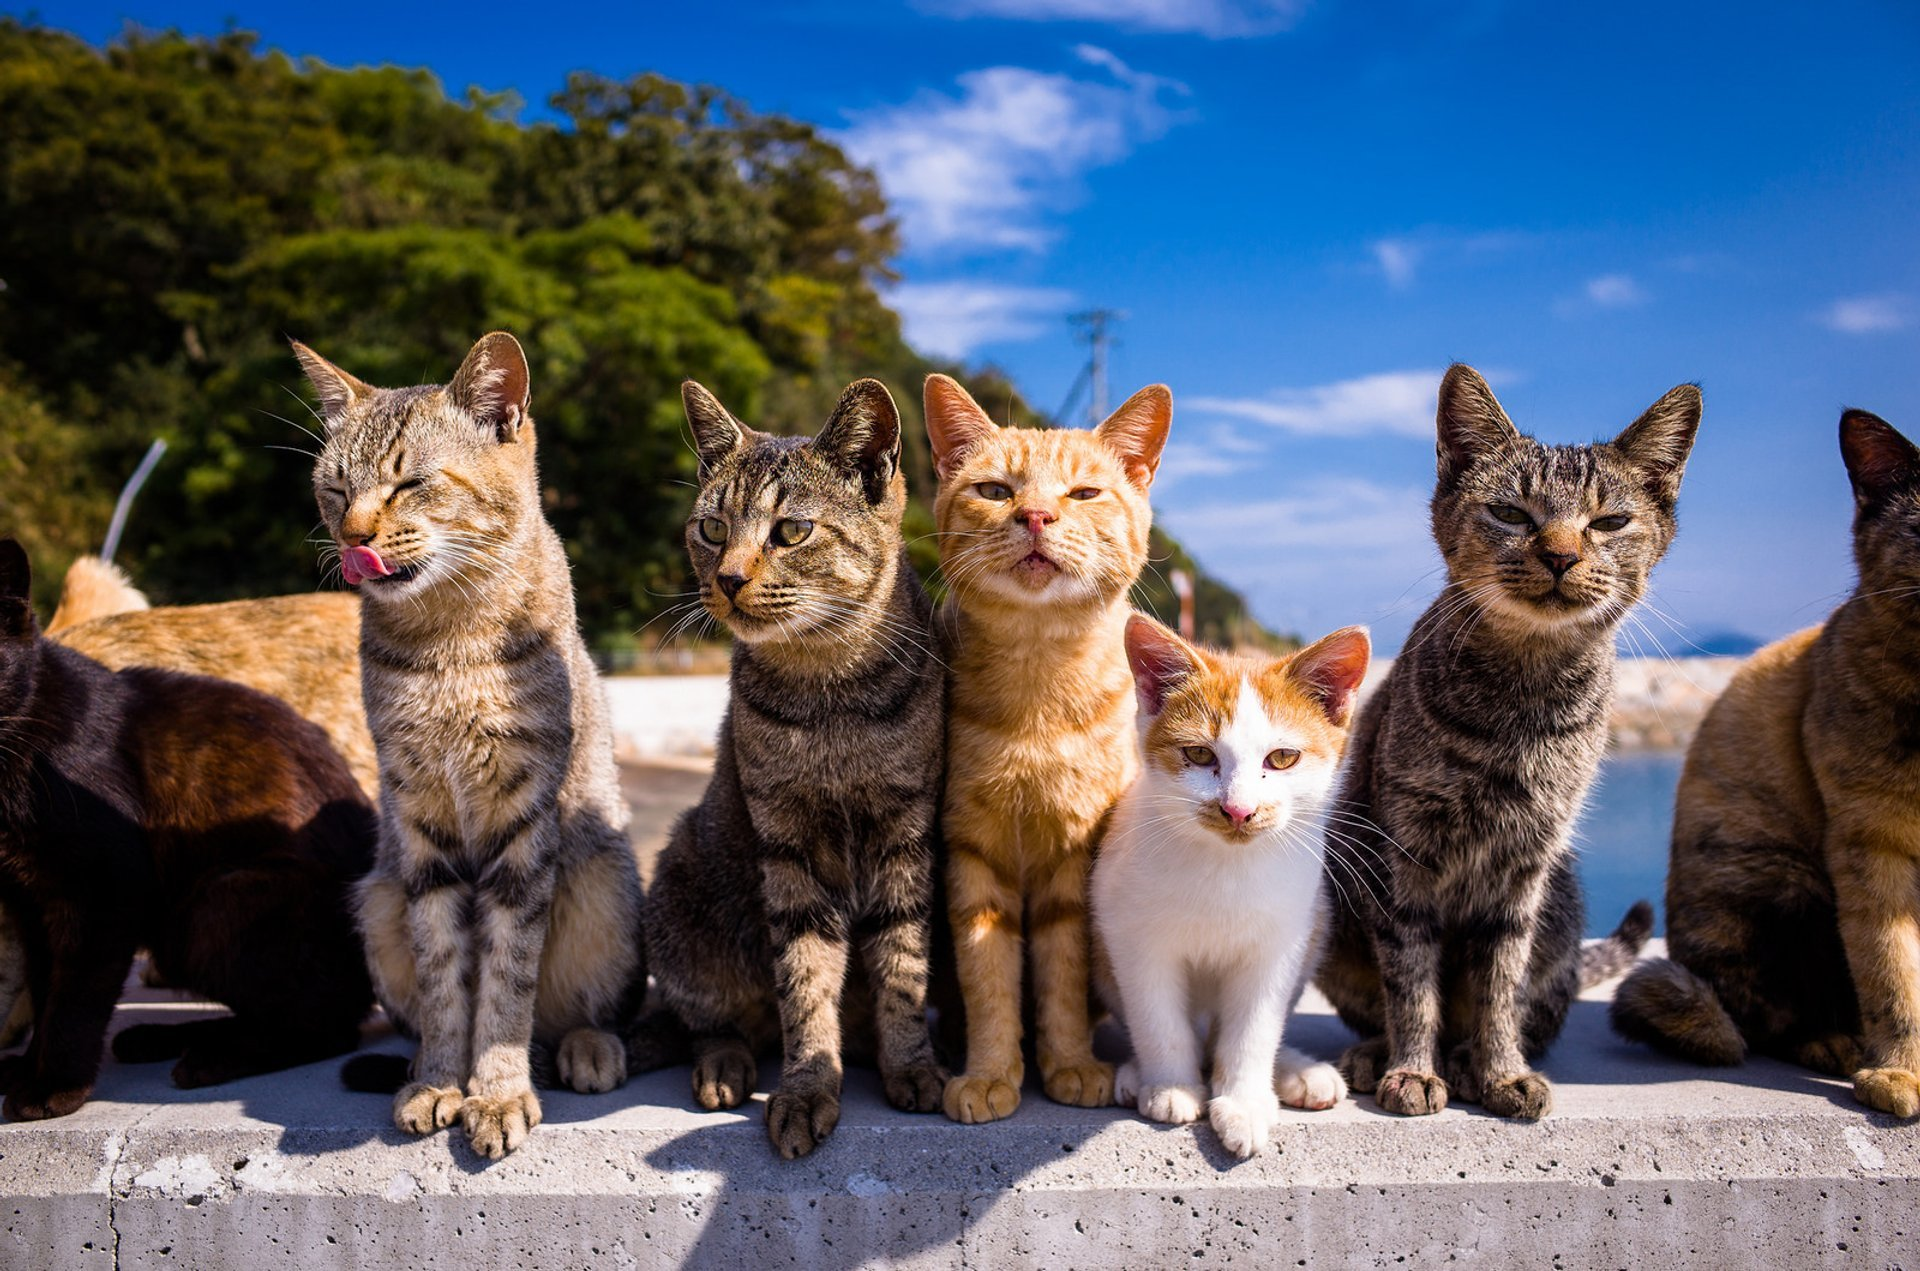 Aoshima (Cat Island) in Japan 2020 - Best Time